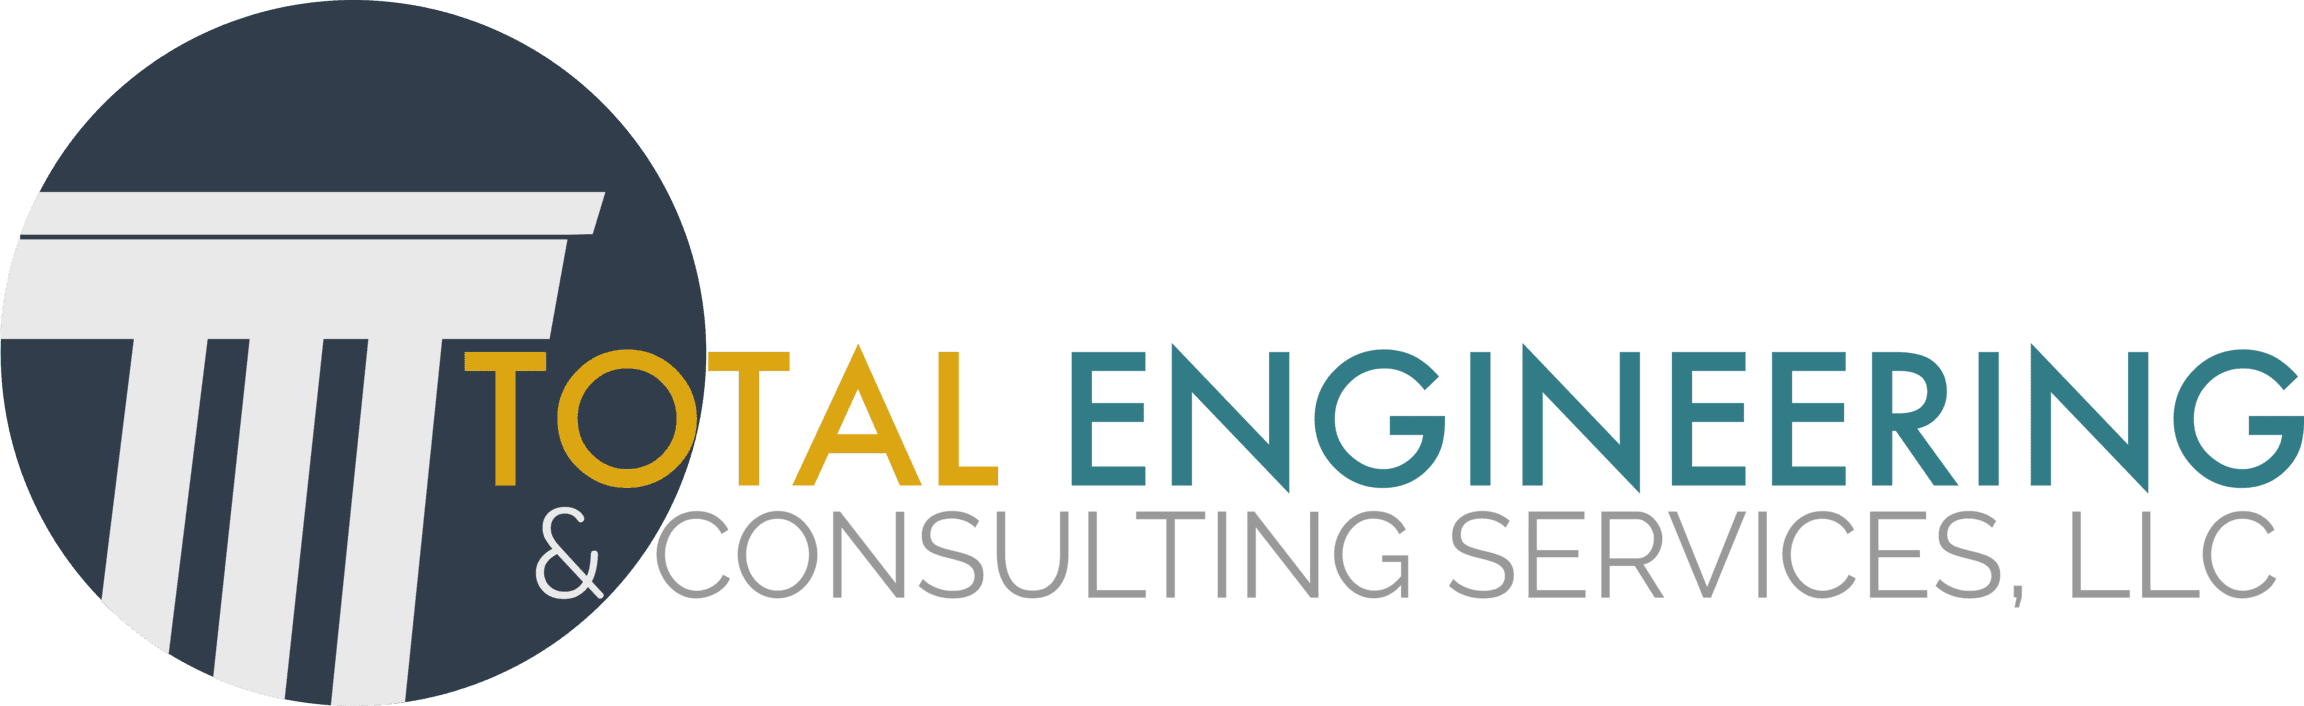 Total Engineering & Consulting